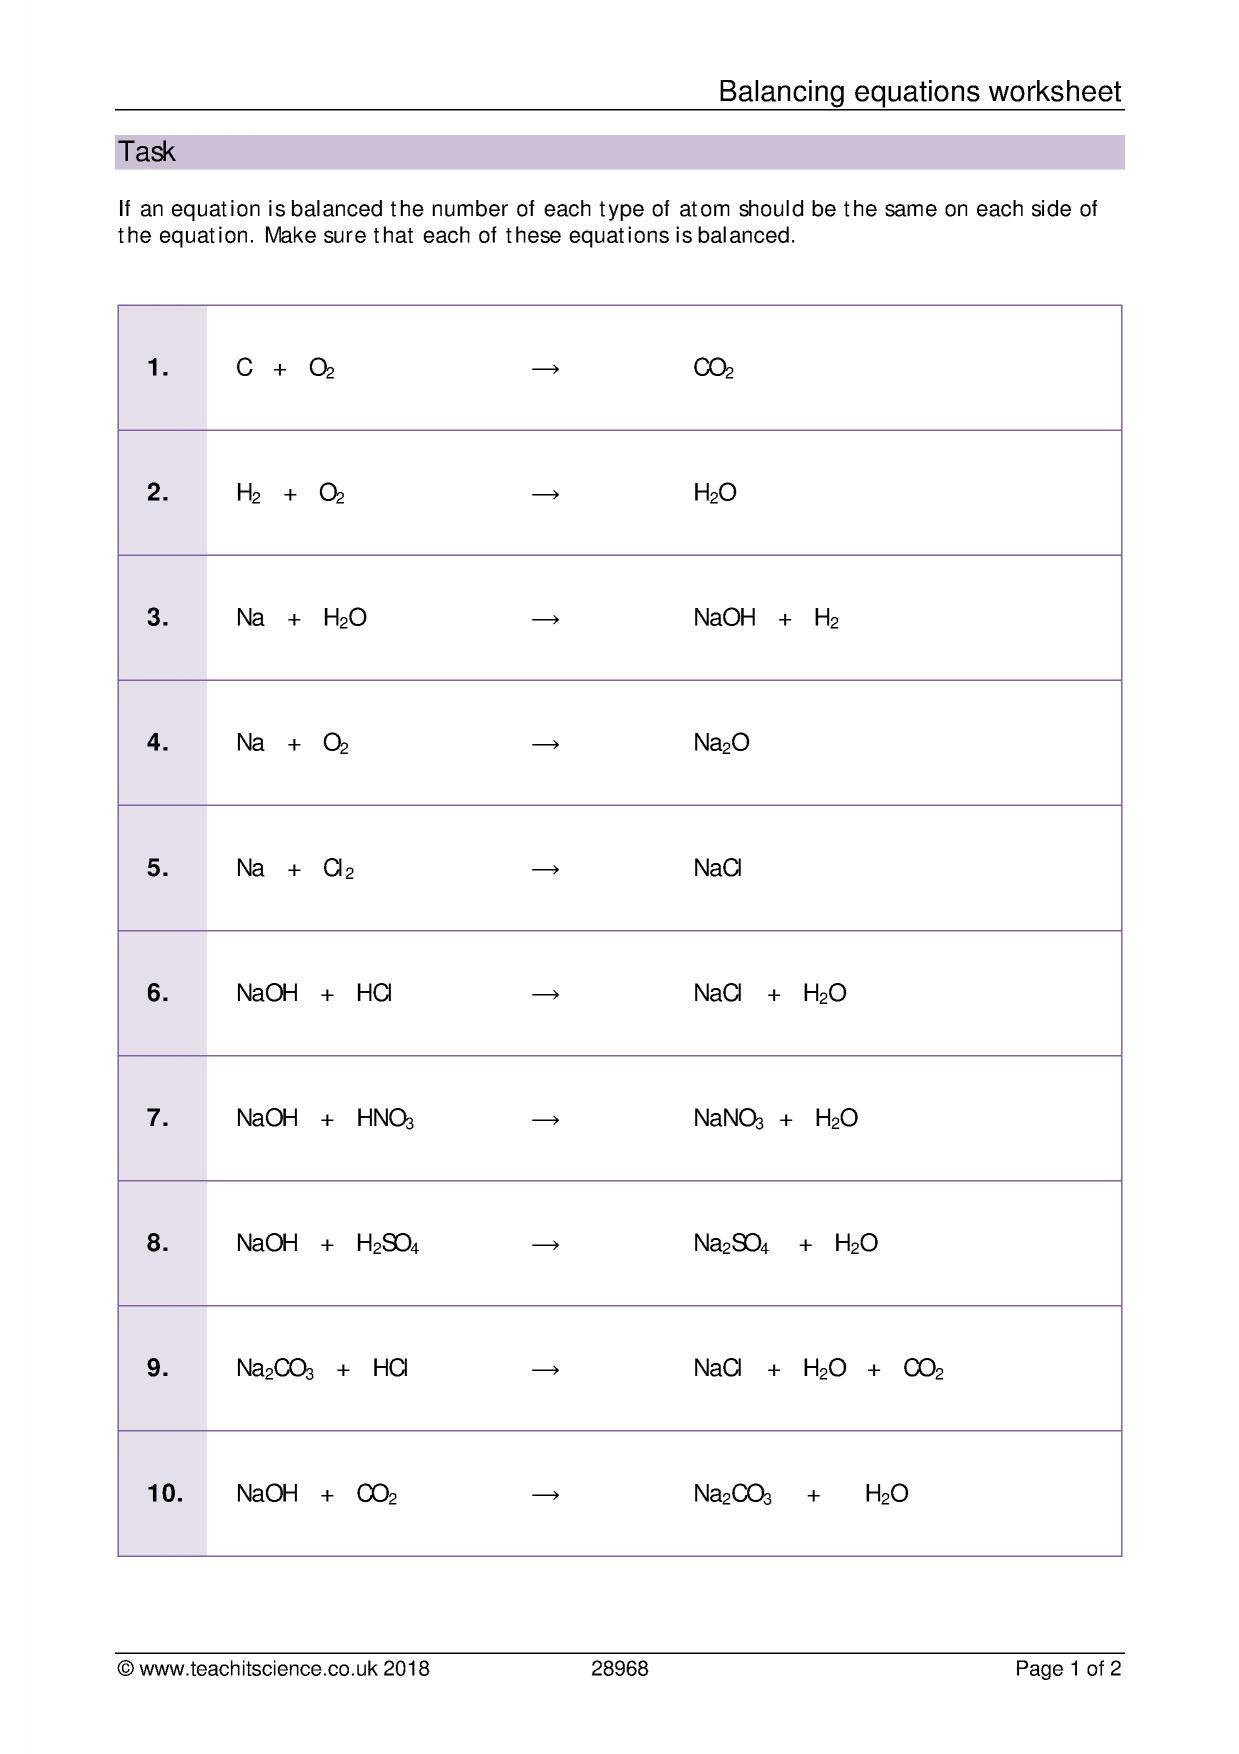 30 Balancing Equations Worksheet Answer Key